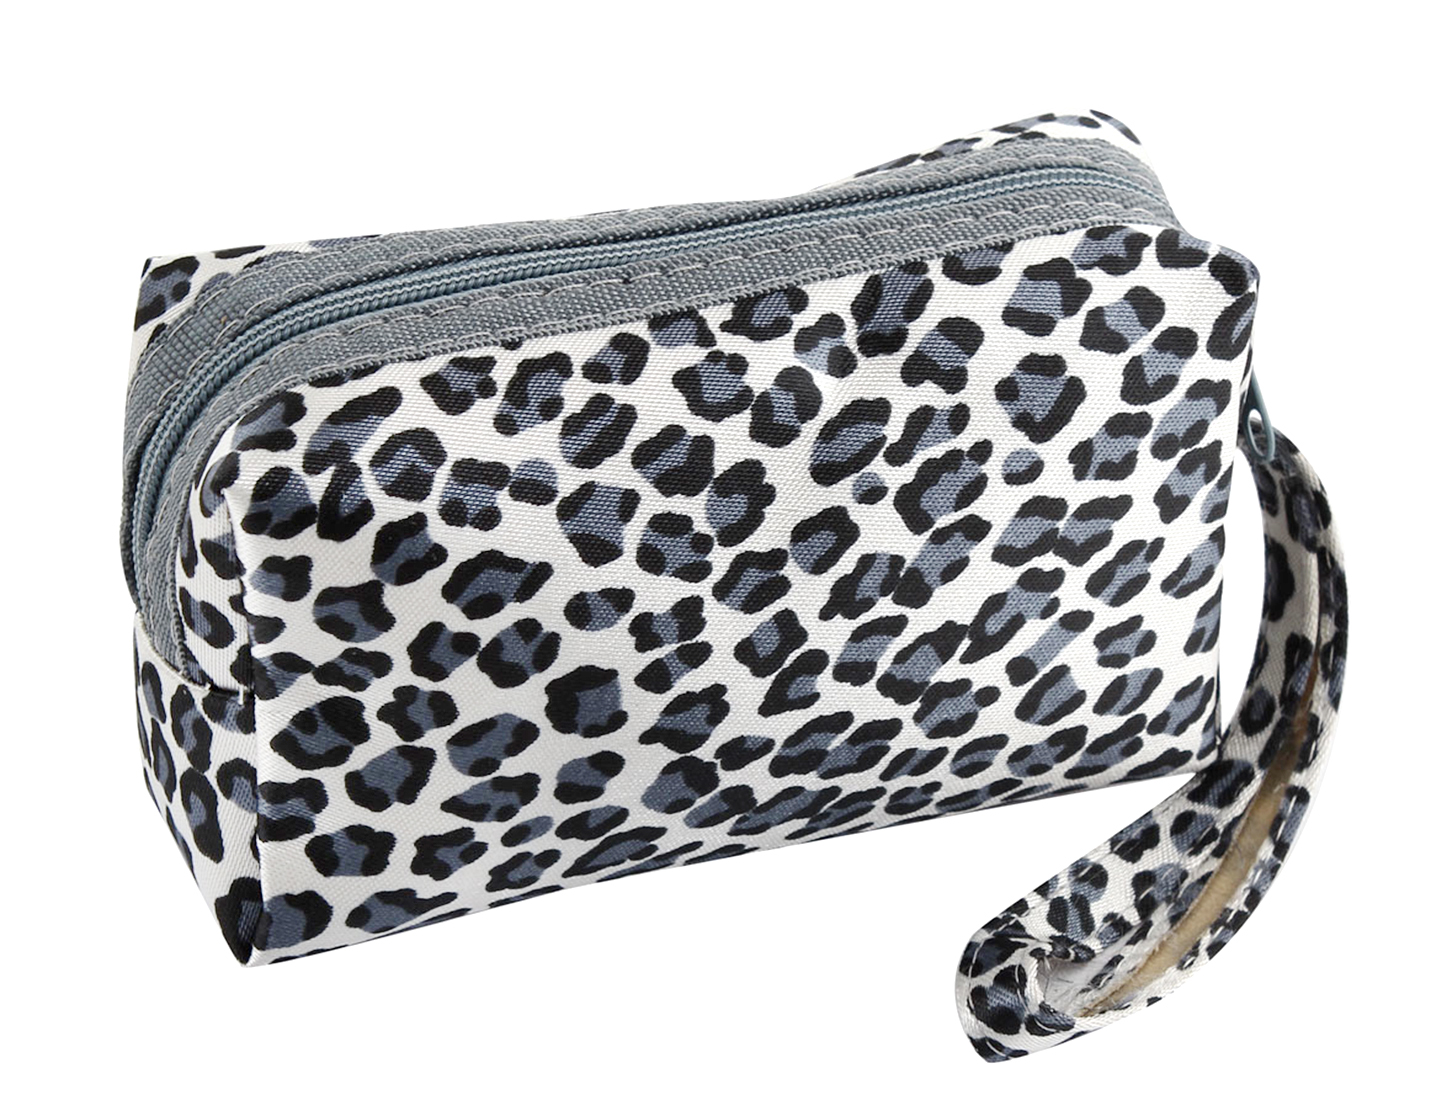 Portable Strap Leopard Printed Zippered Mini Purse Wallet Black White for Ladies